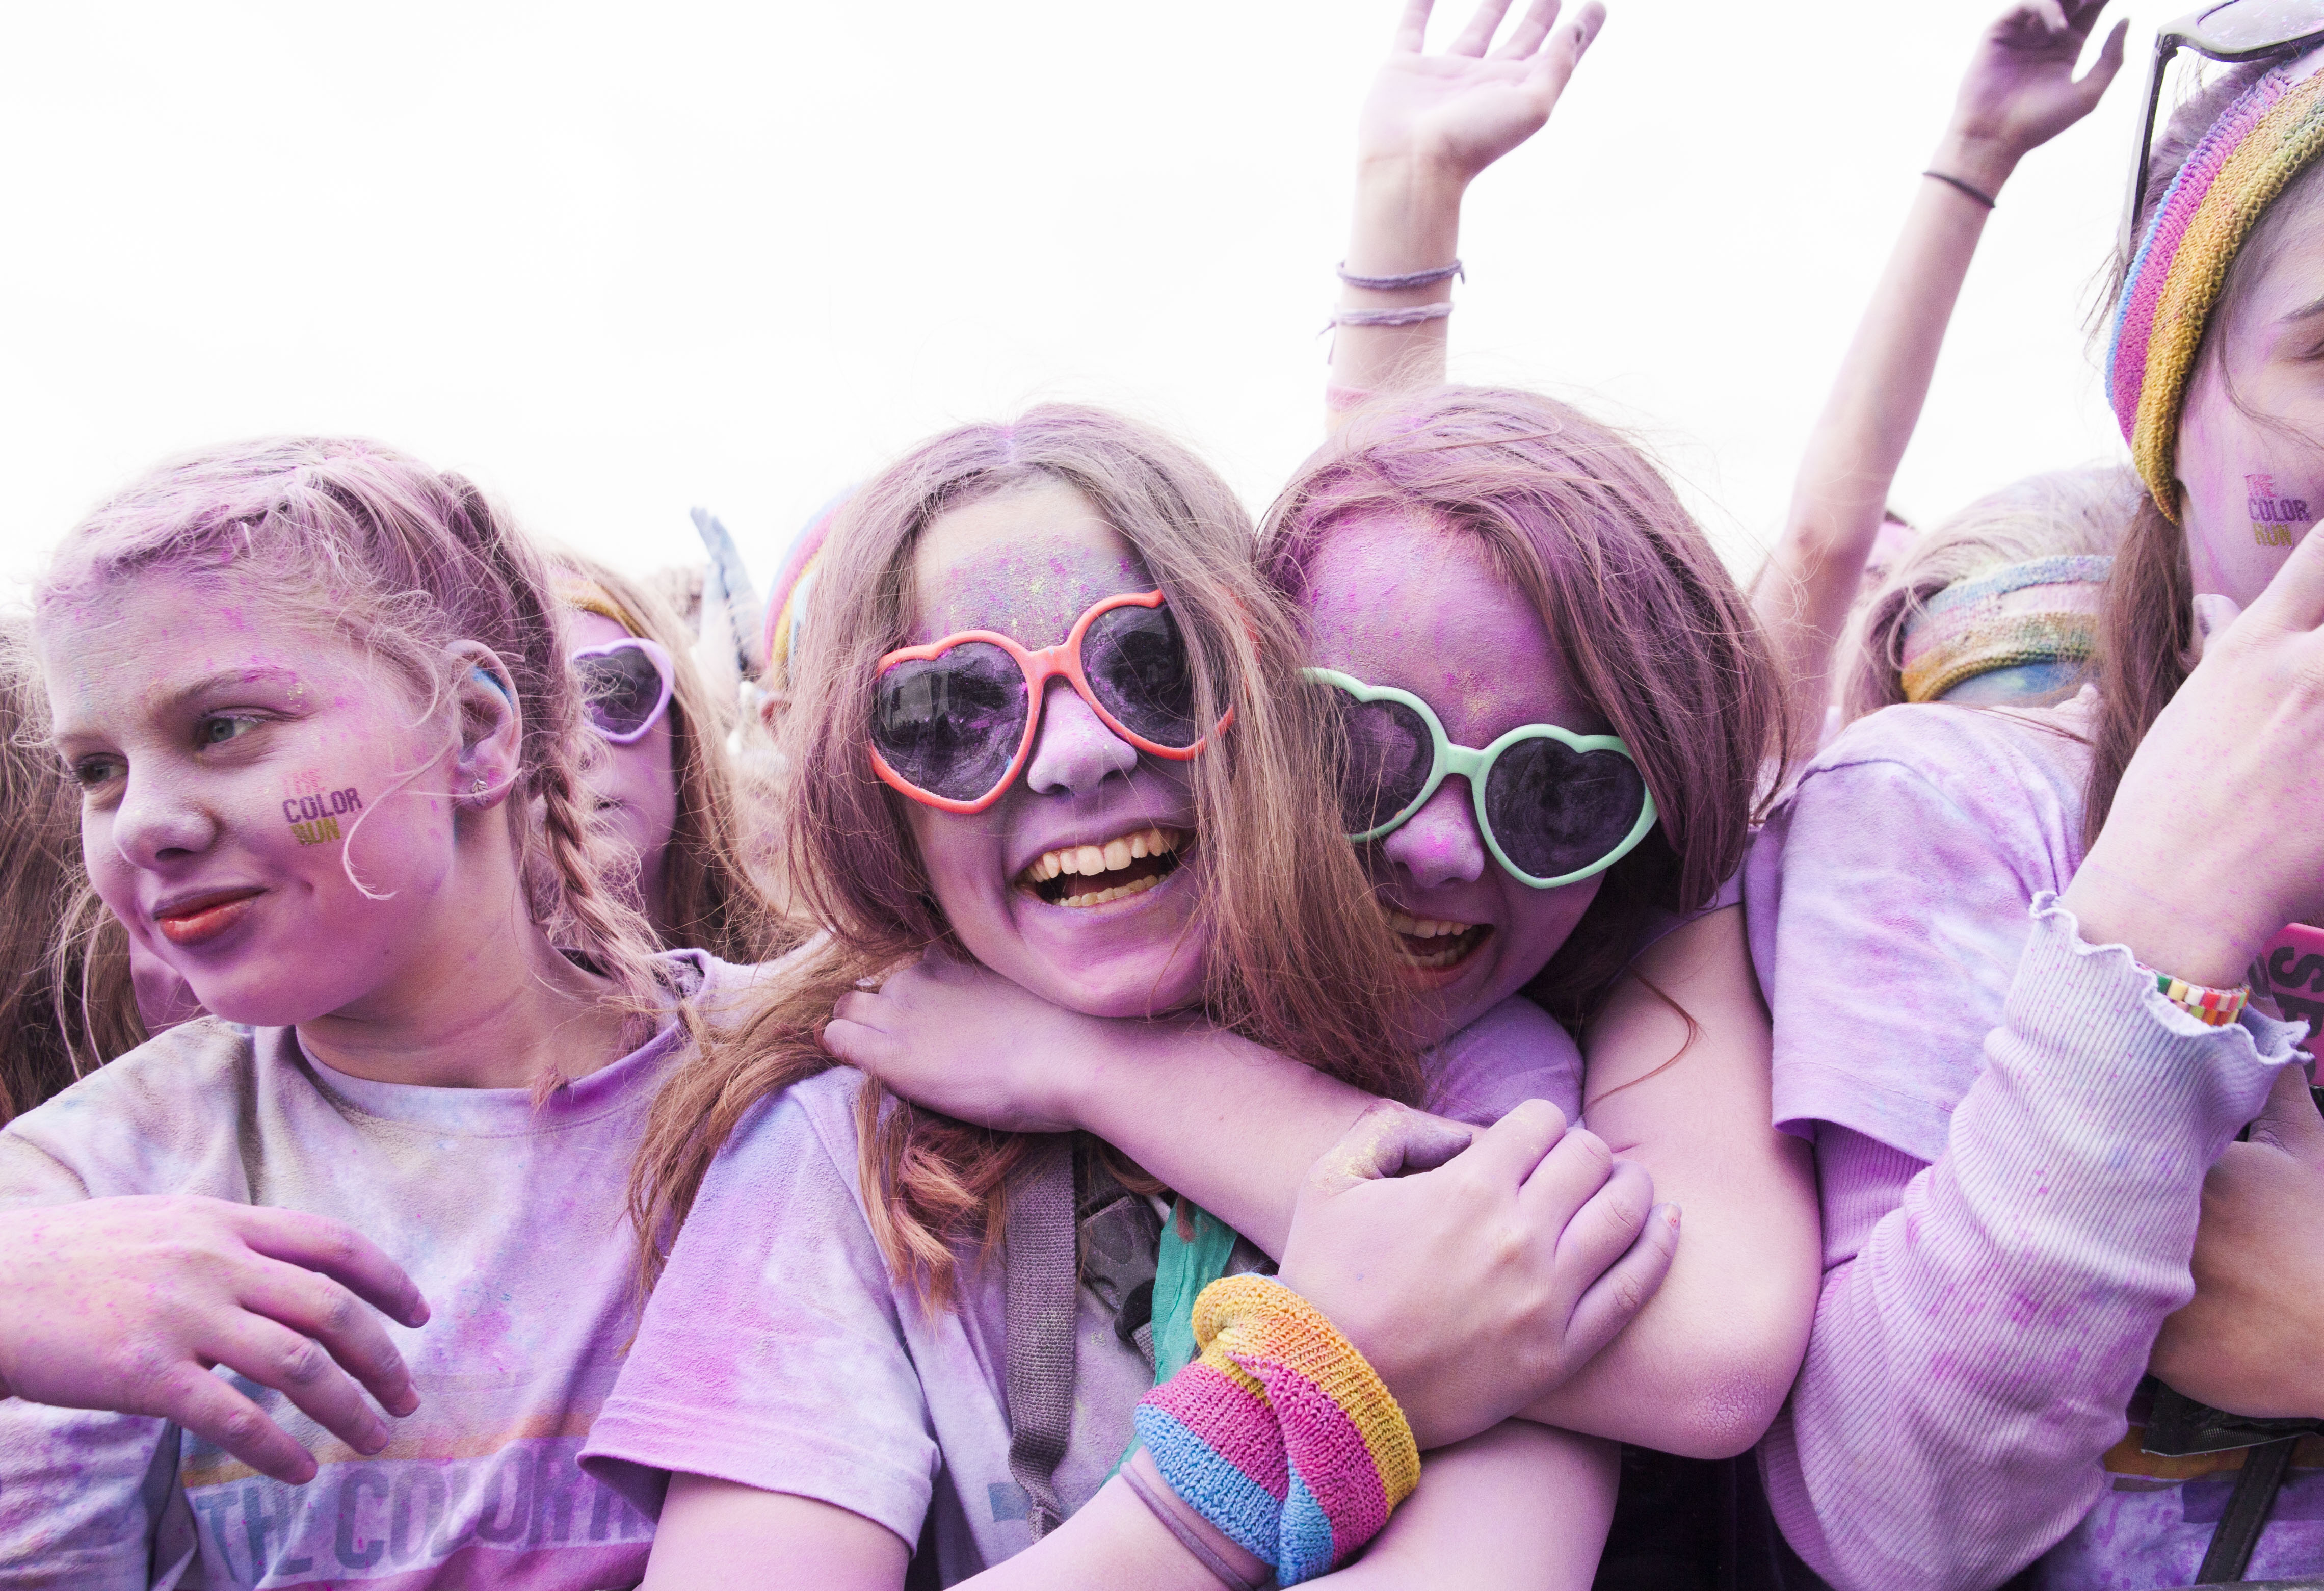 TheColorRun2015_HelenaLundquist_mindre_8